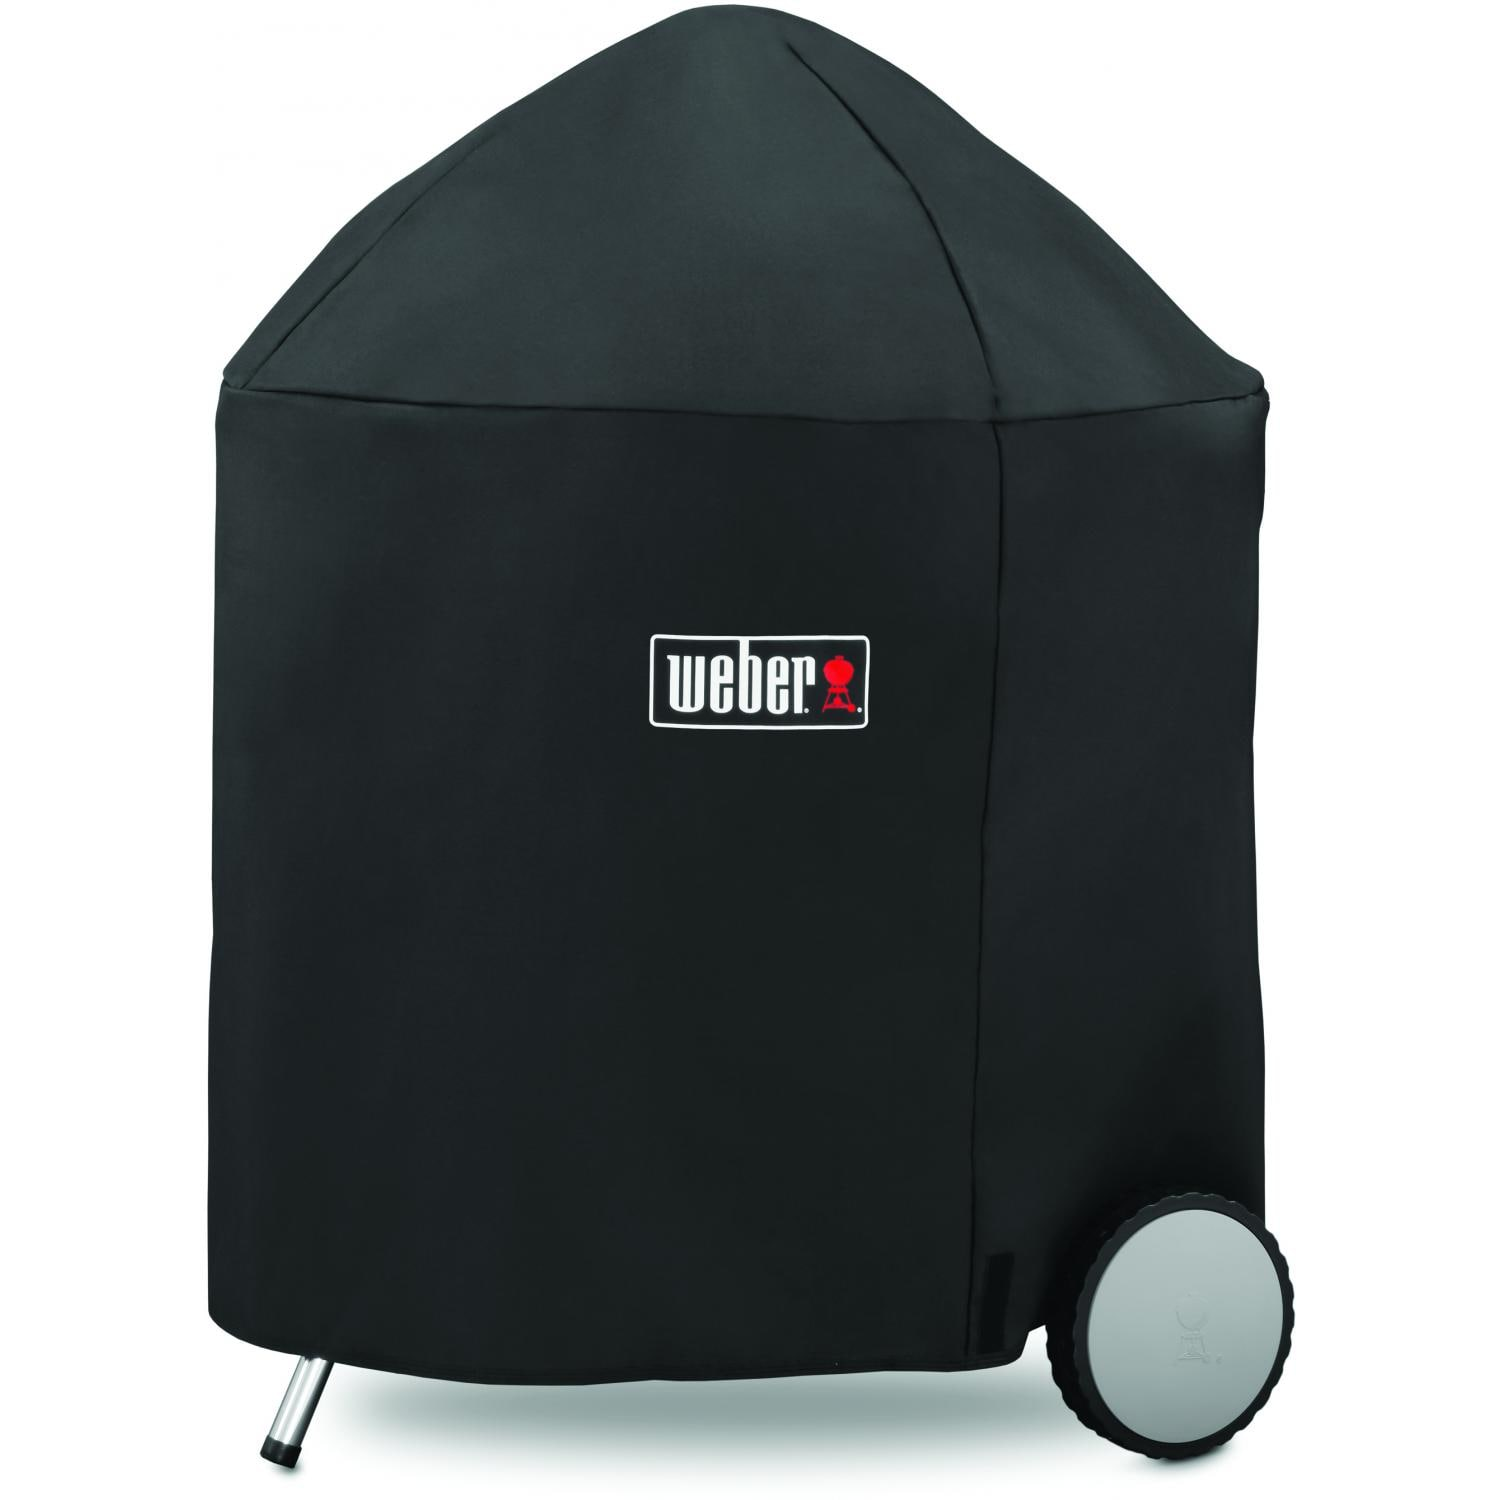 Weber 7153 Premium Grill Cover For 26 Inch Original Kettle Premium Charcoal Grills